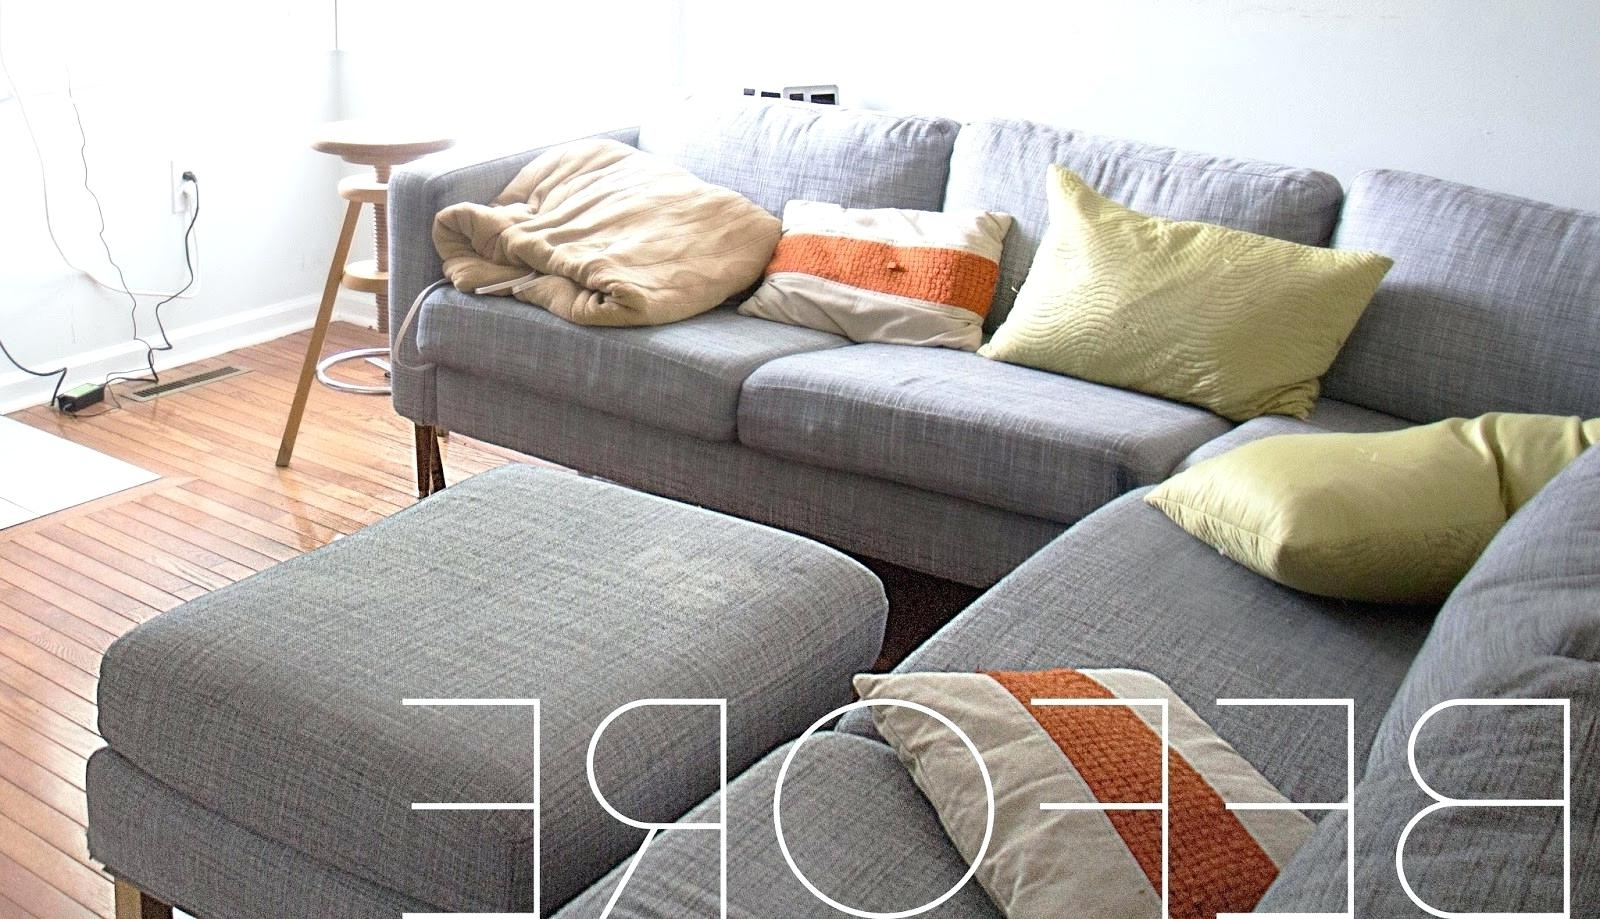 Sectional Sofas Covers S Sofa For Dogs Canada Sale Pertaining To Current Canada Sale Sectional Sofas (View 18 of 20)